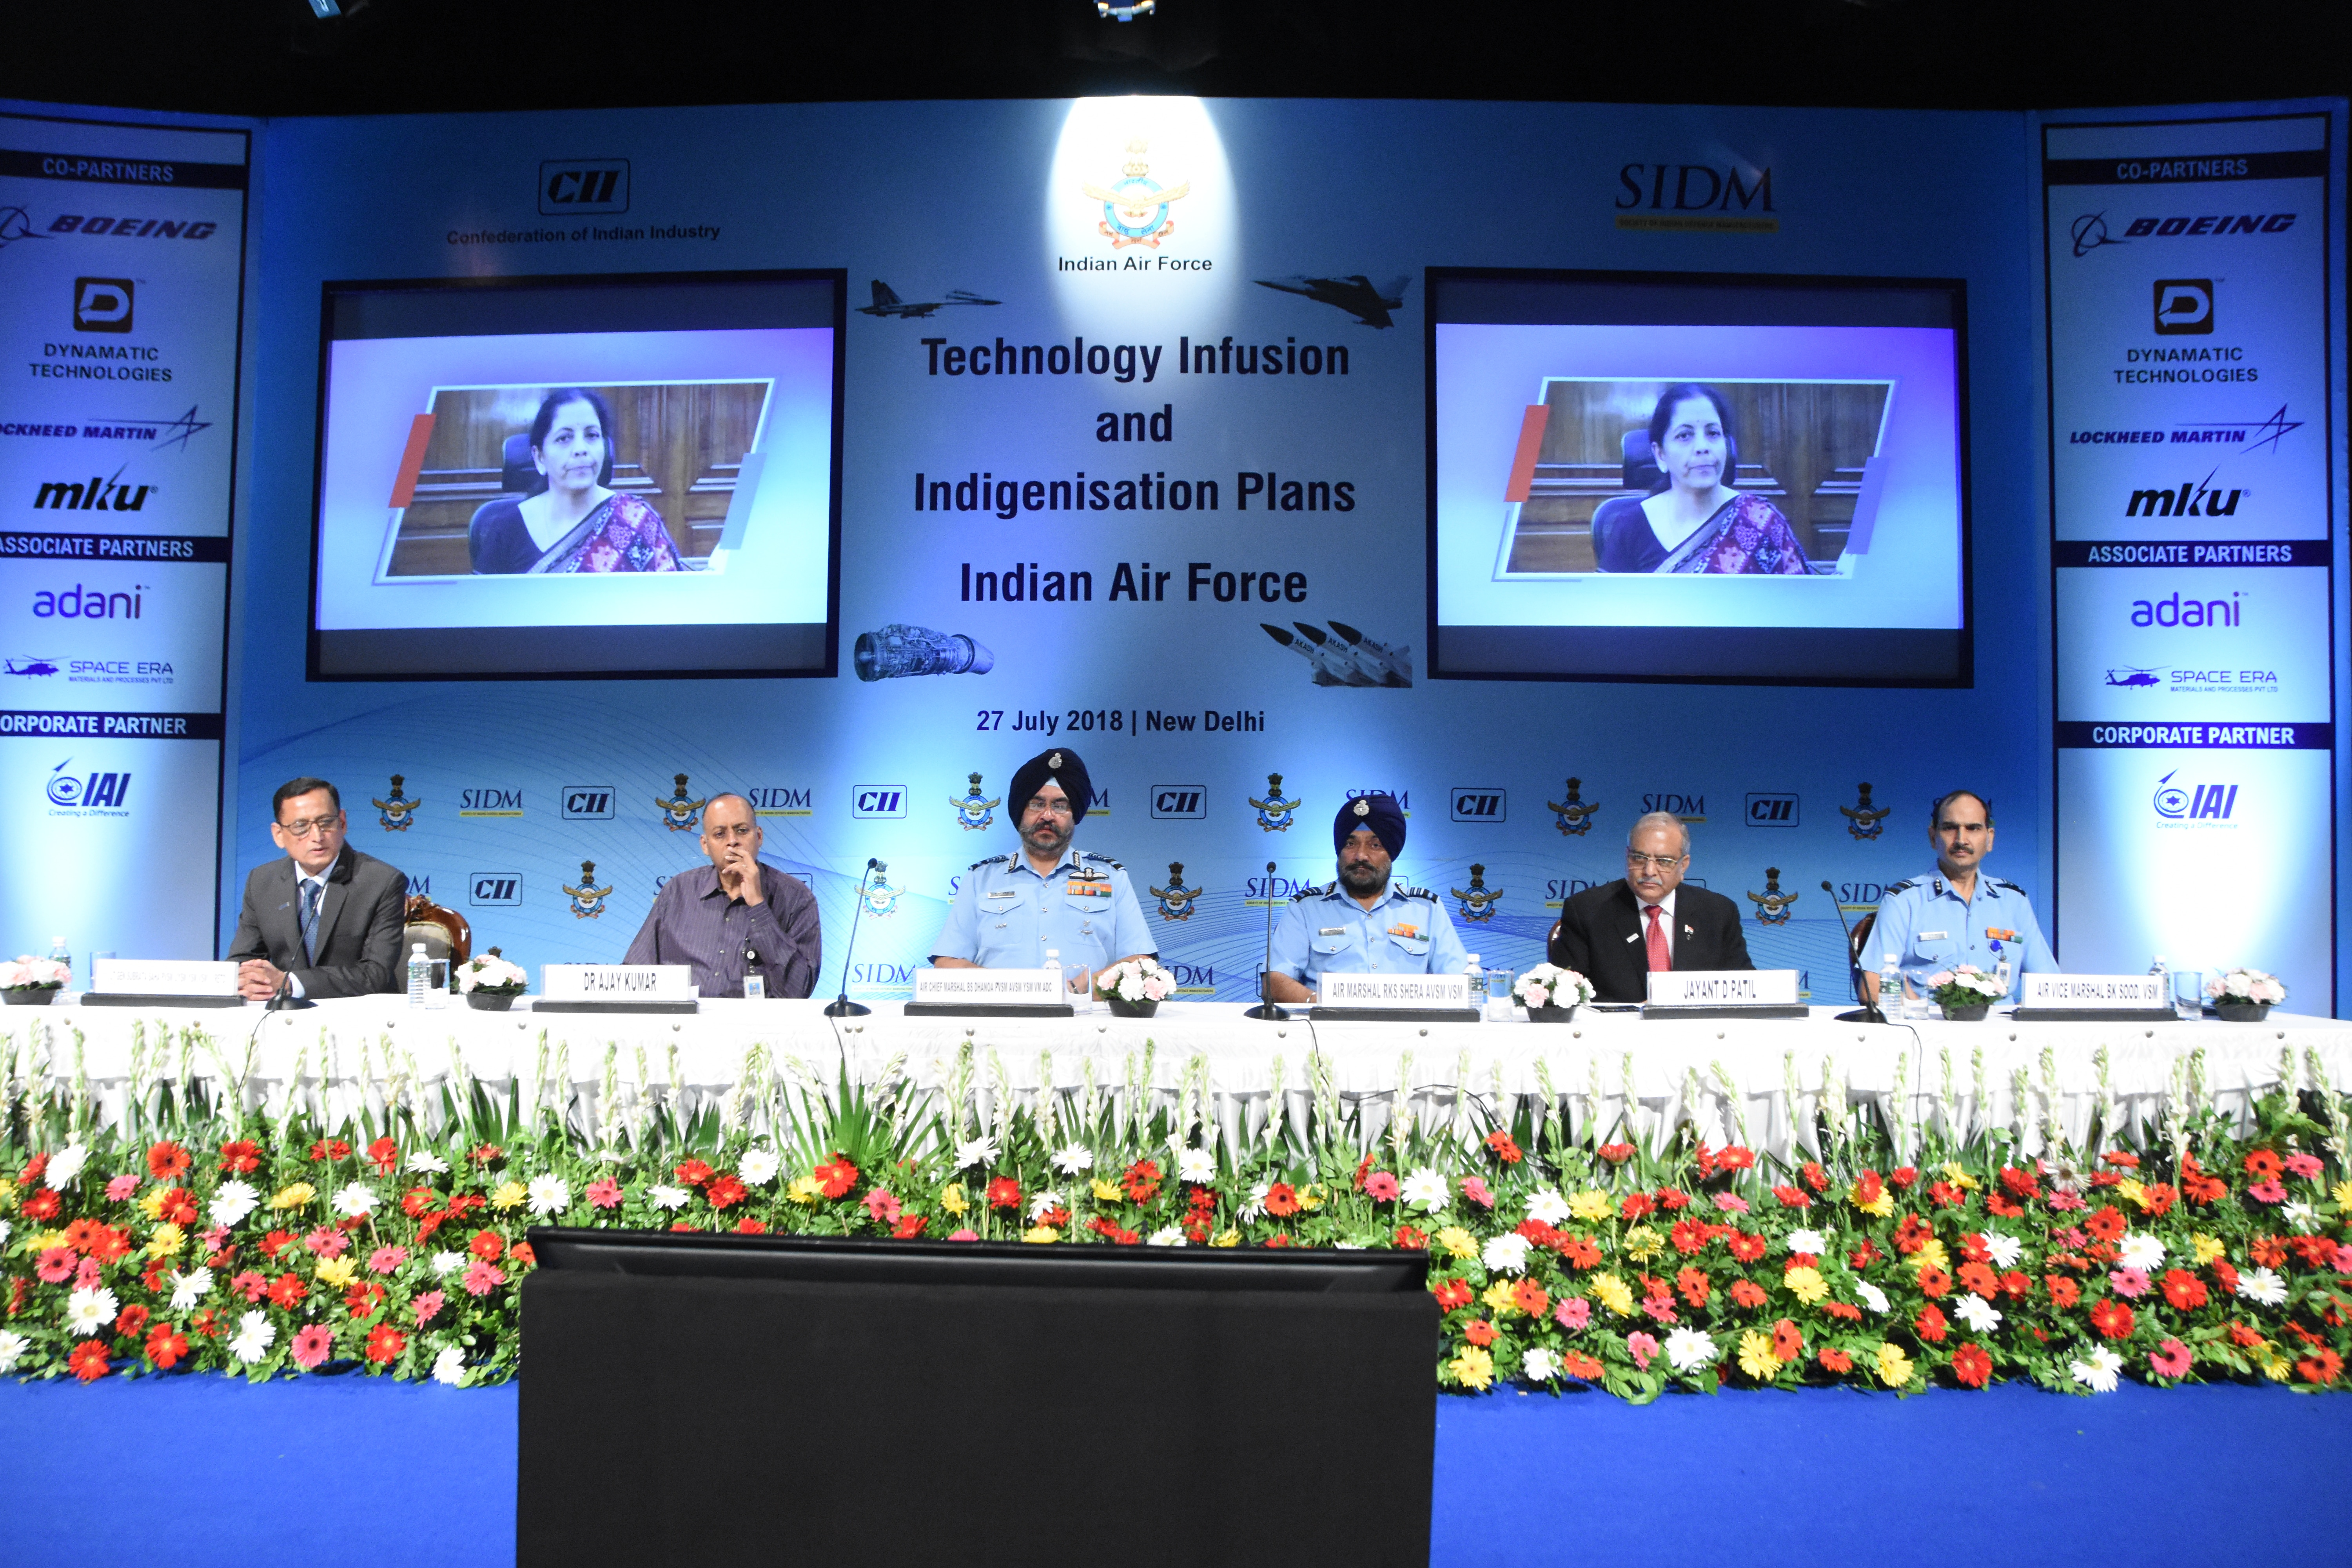 Inaugural Session of the Technology Infusion and Indigenization Plans of the Indian Air Force Seminar